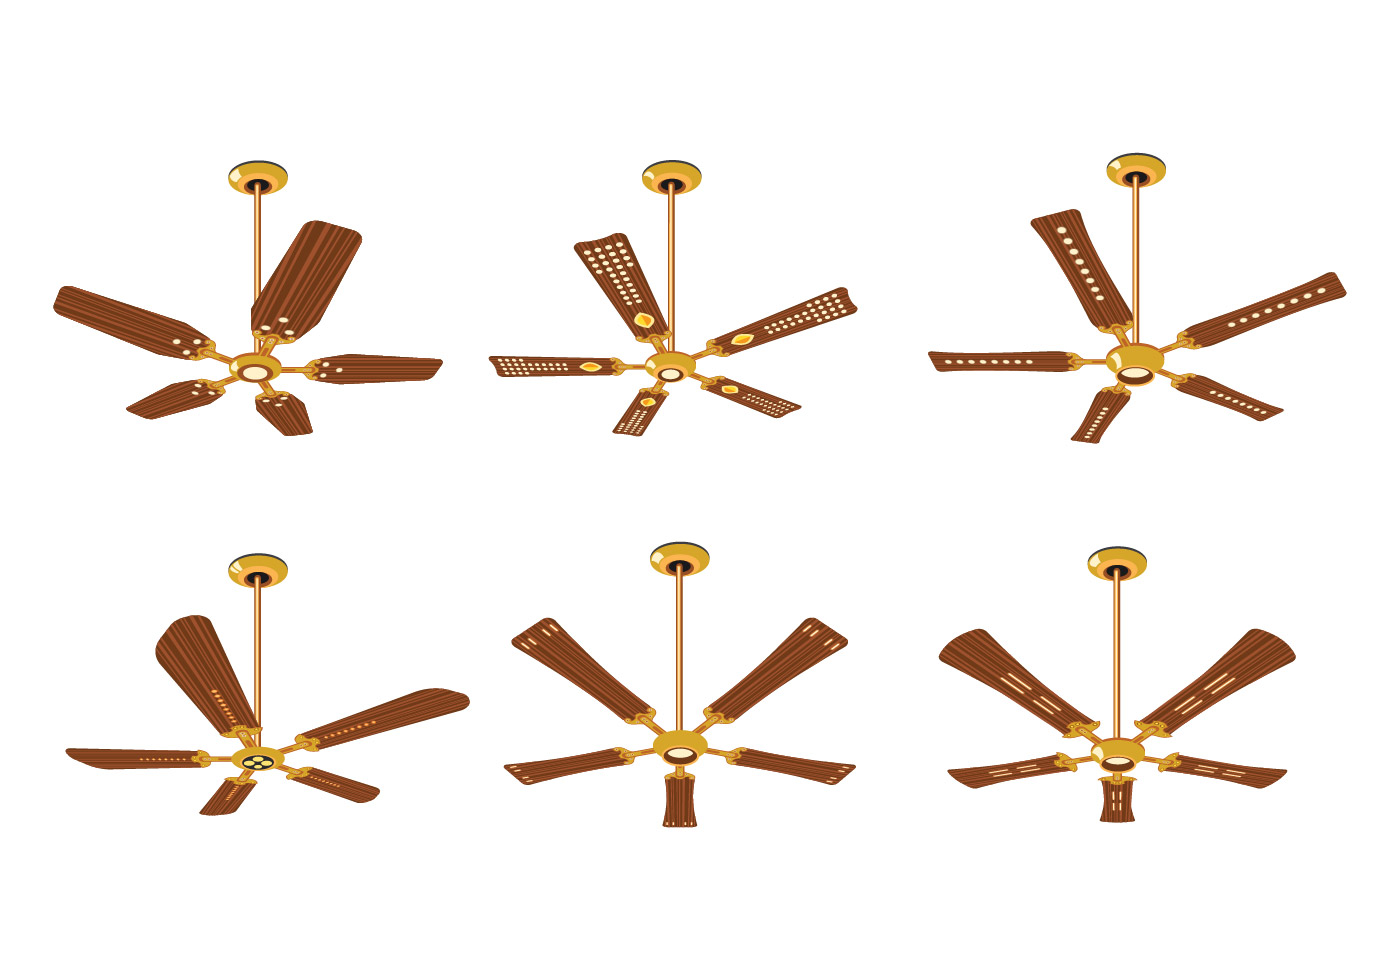 Electric Room Ceiling Fan Collection Download Free Vector Art Printed Red Electrical Circuit Board Heart Symbol Stock Graphics Images